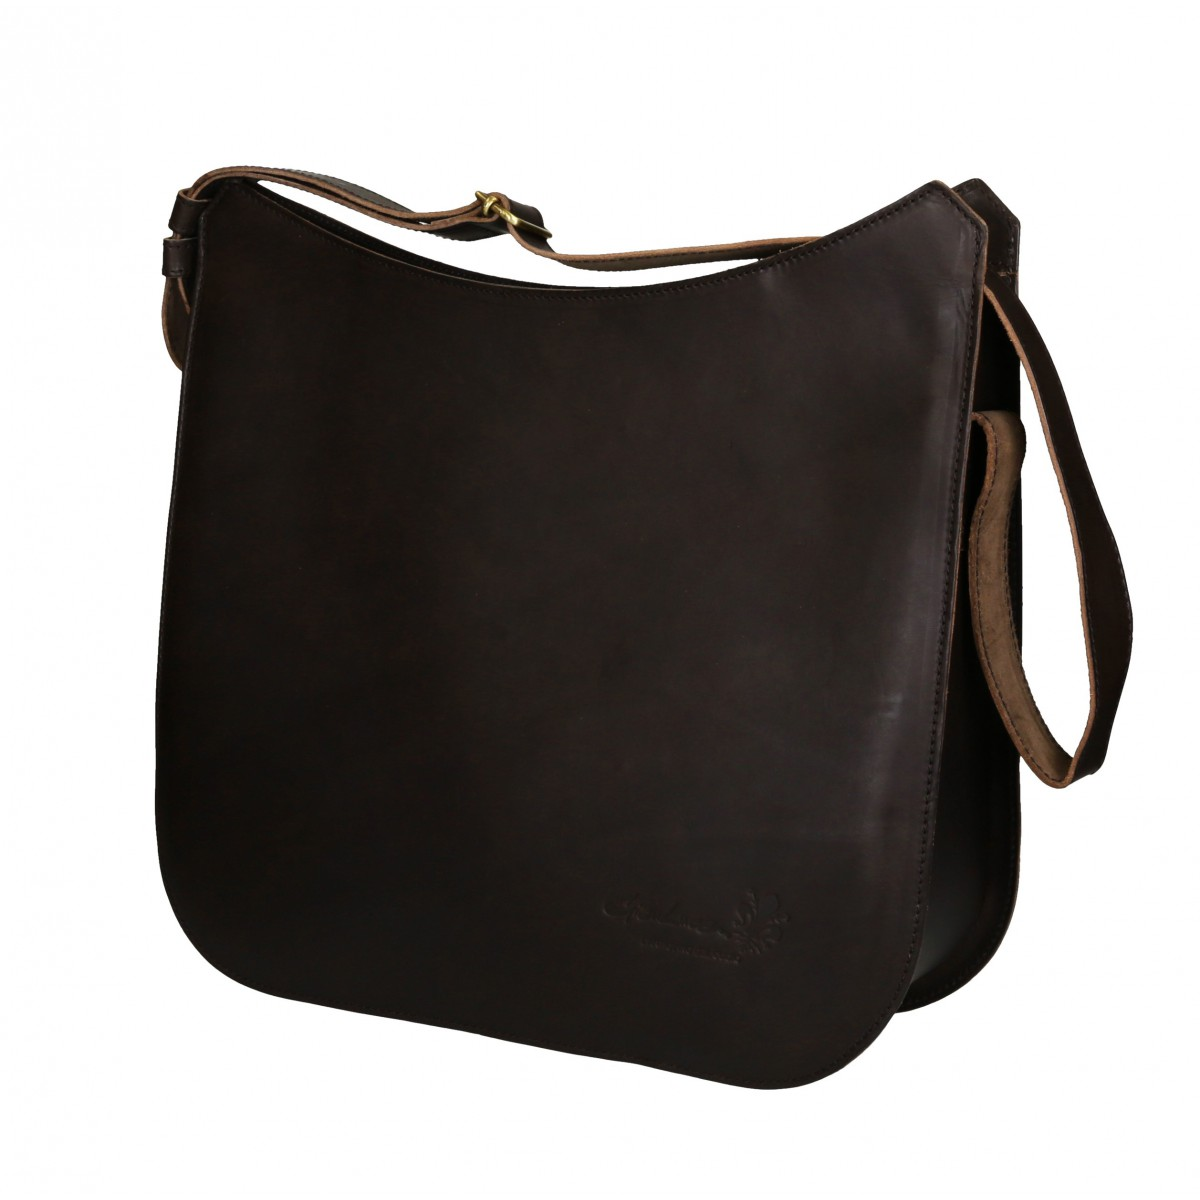 Free shipping on shoulder bags women at rusticzcountrysstylexhomedecor.tk Shop the latest shoulder-bag styles from the best brands. Totally free shipping & returns.